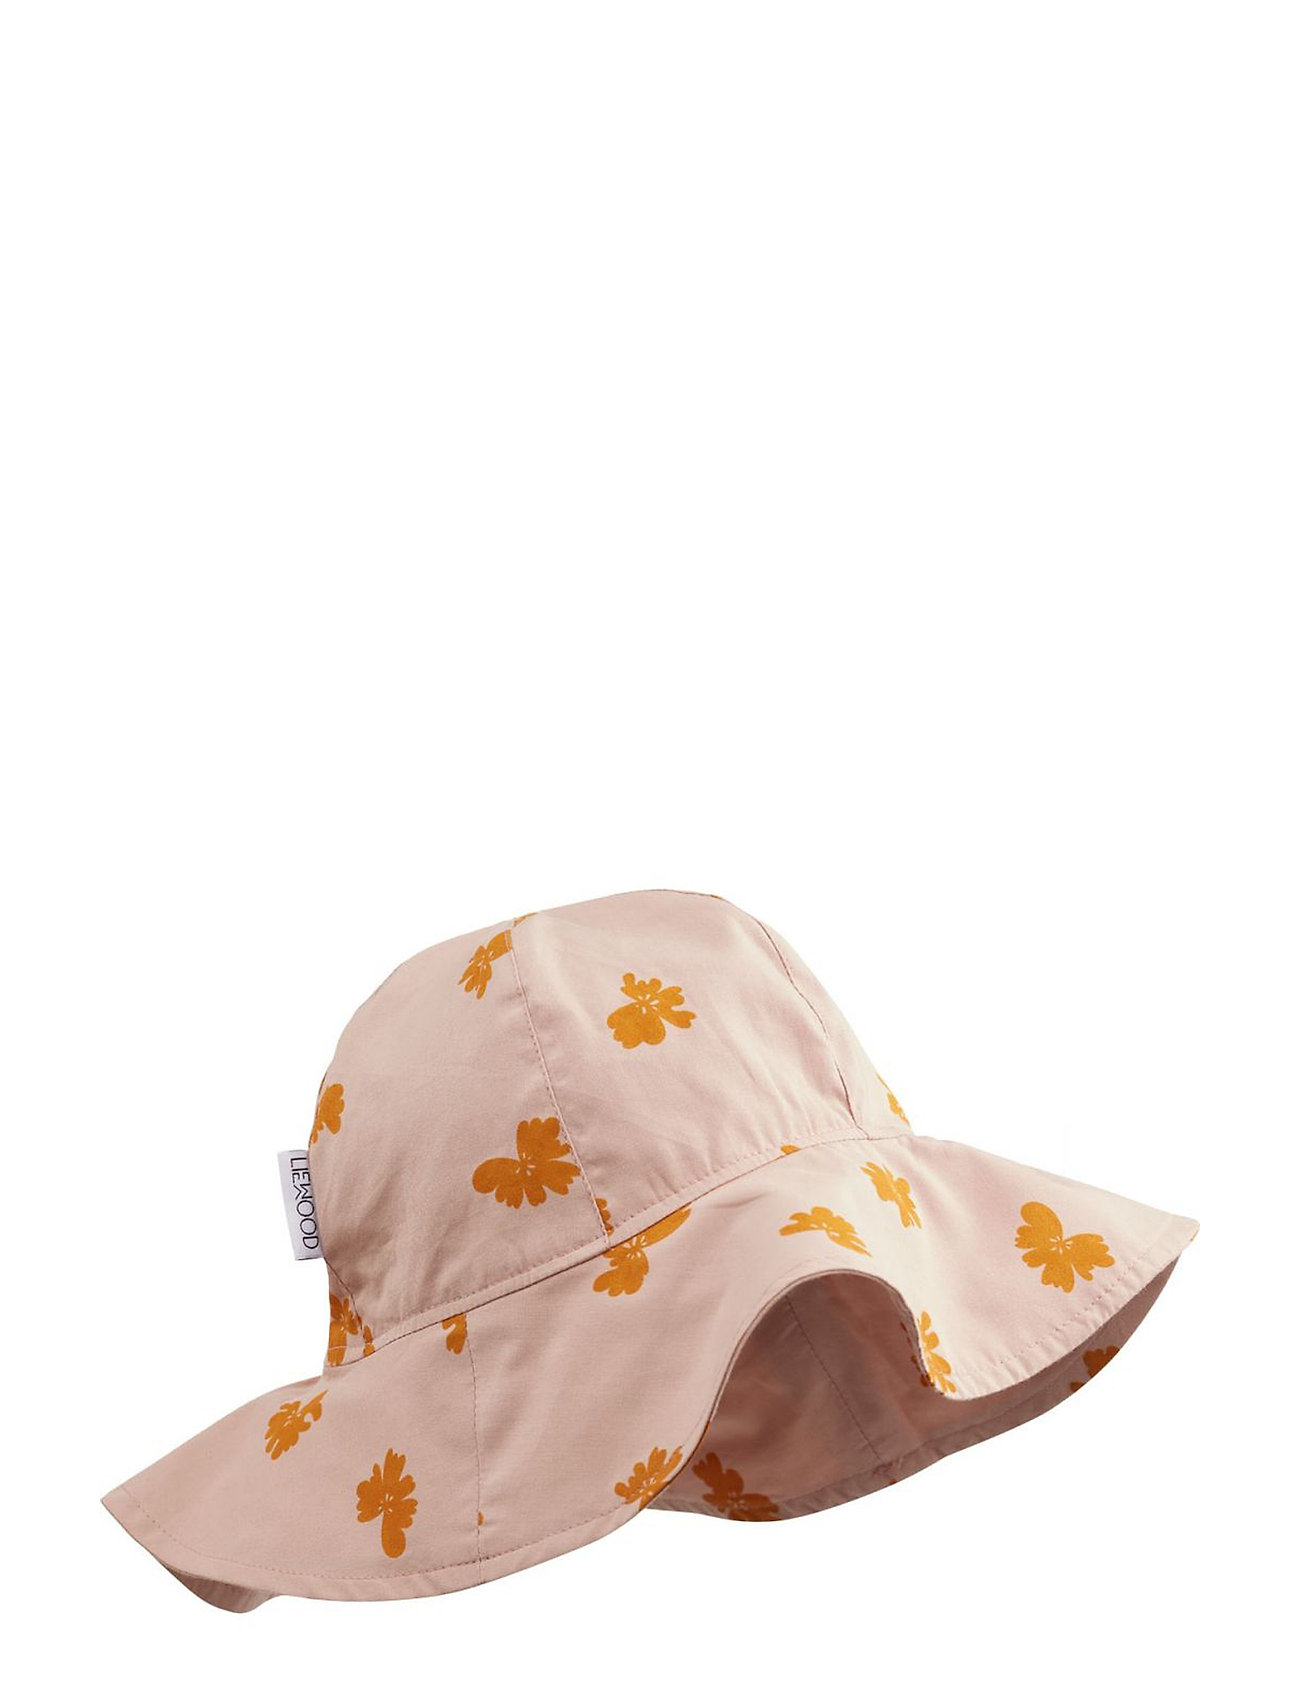 Liewood Amelia sun hat - SPROUT ROSE